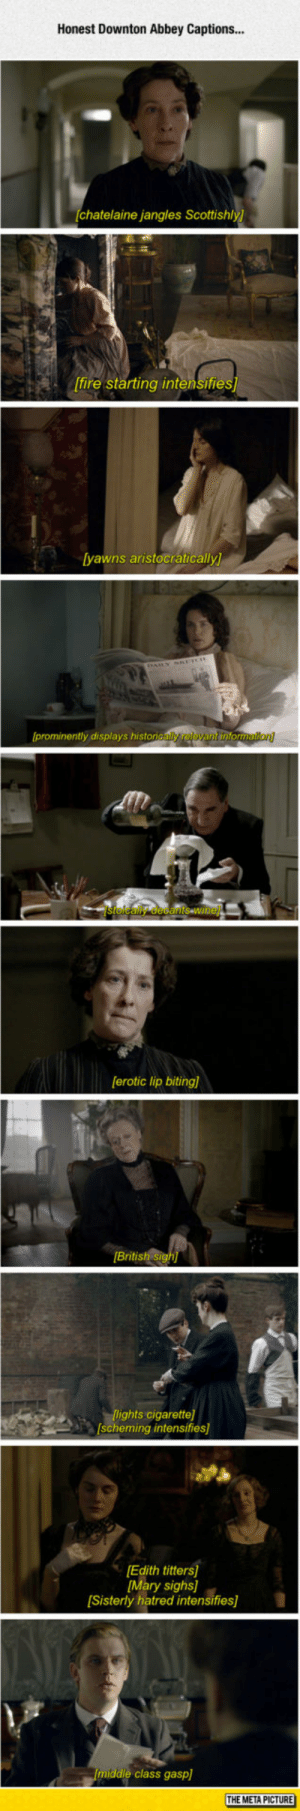 laughoutloud-club:  Honest Captions: Honest Downton Abbey Captions...  chatelaine jangles Scottishly)  [fire starting intensifie  yawns aristocratically  prominently displays histon  [erotic lip biting)  British si  CARlights cigarette]  scheming intensifies]  Edith titters  Mary sighs]  Sisterly hatred intensifies]  middle class gasp]  THE META PICTURE laughoutloud-club:  Honest Captions